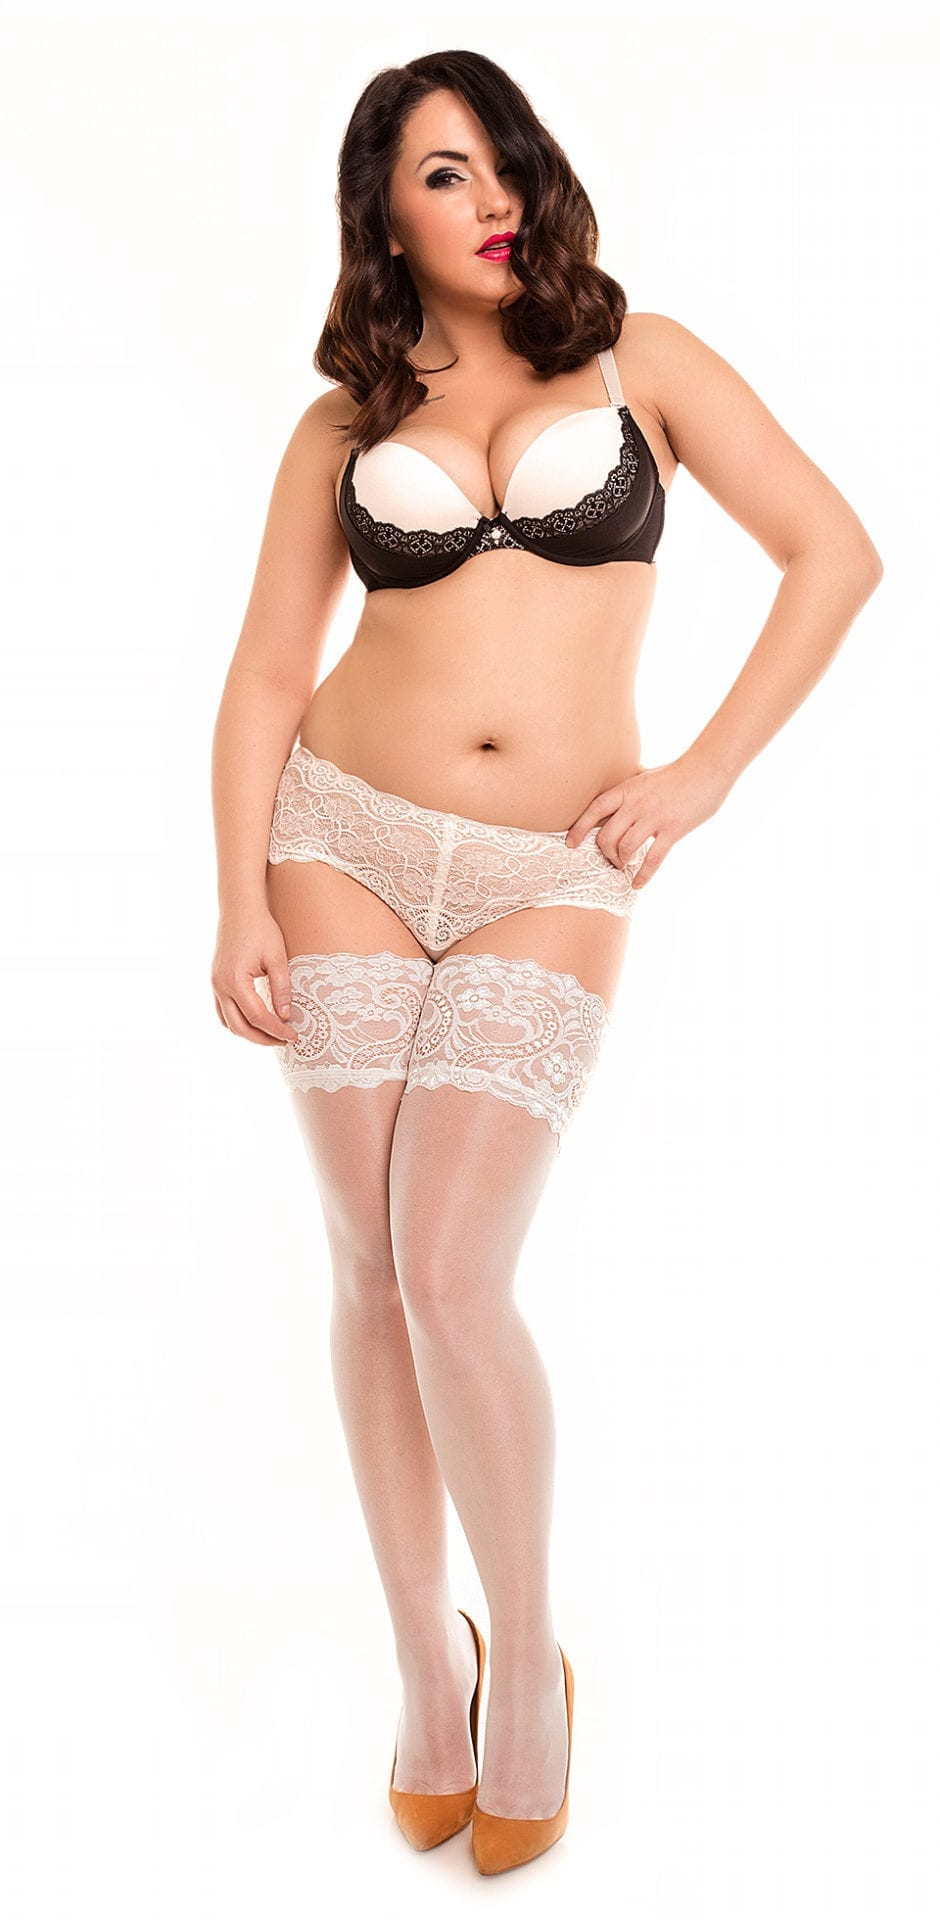 Plus size model wearing Glamory dream 20 stockings in color champagne front view